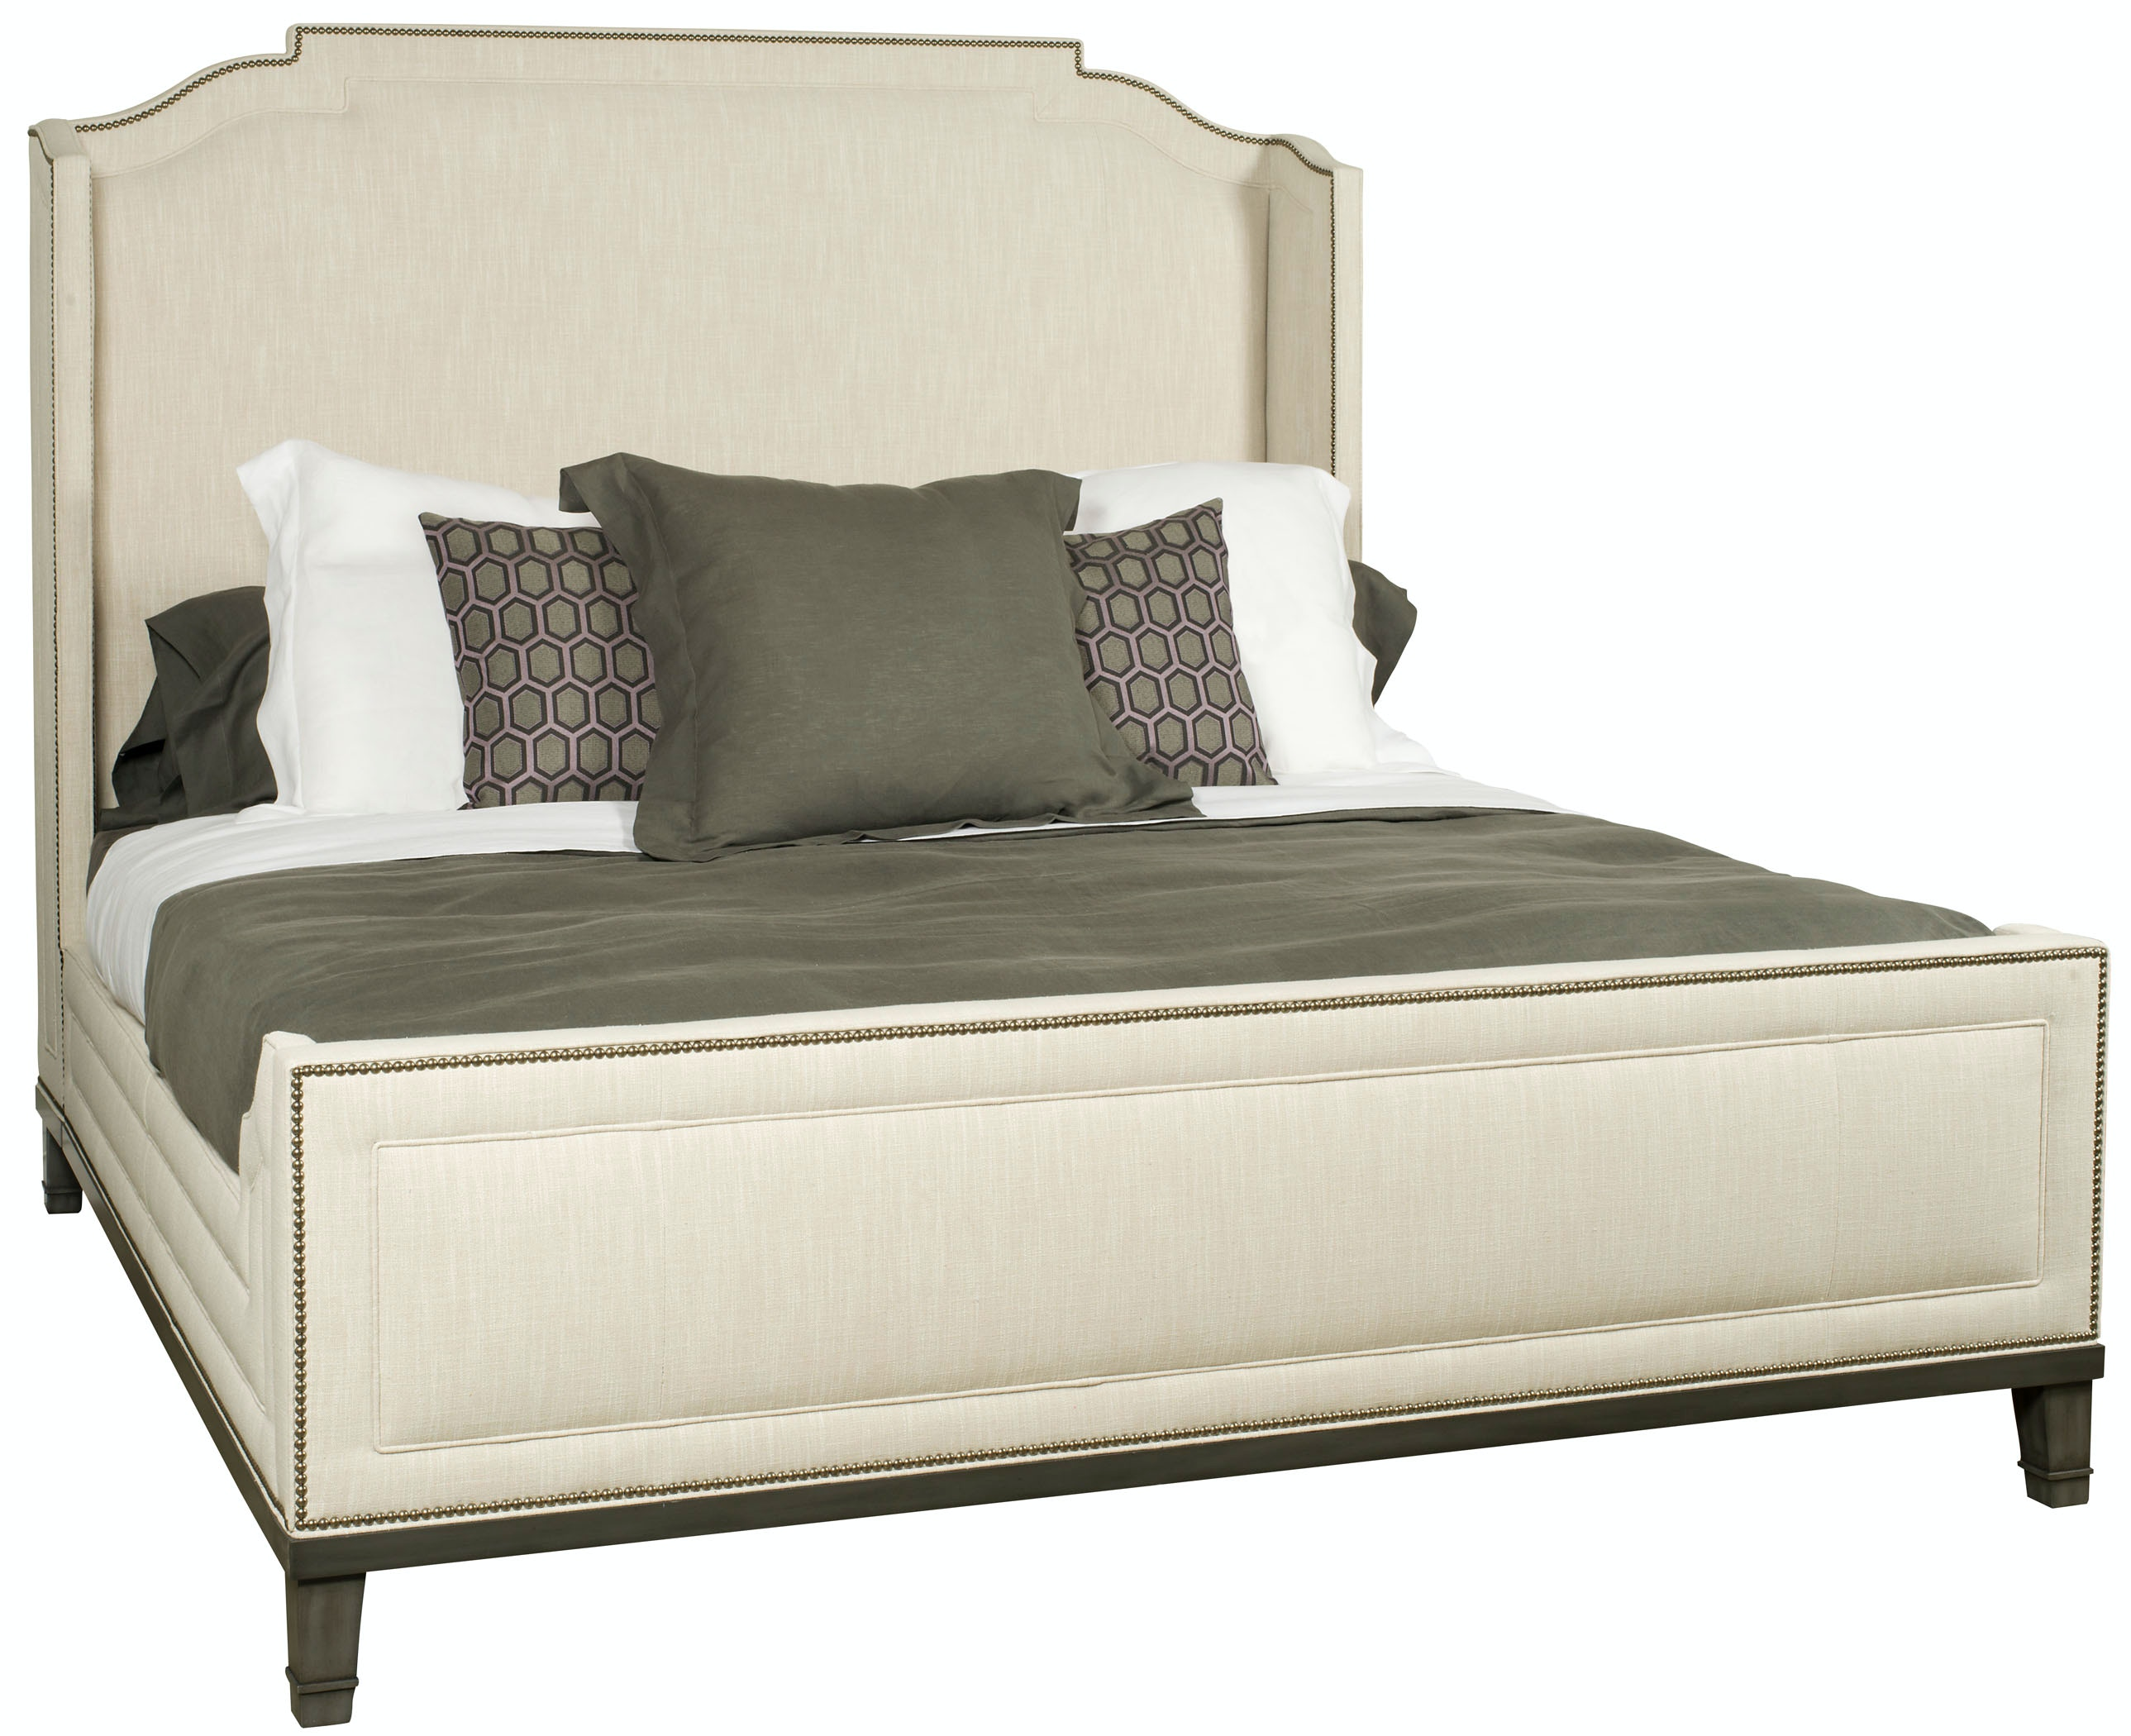 ... Bakers Furniture Tucson By Vanguard Furniture Bedroom Pennington King  Bed W527k Hf ...